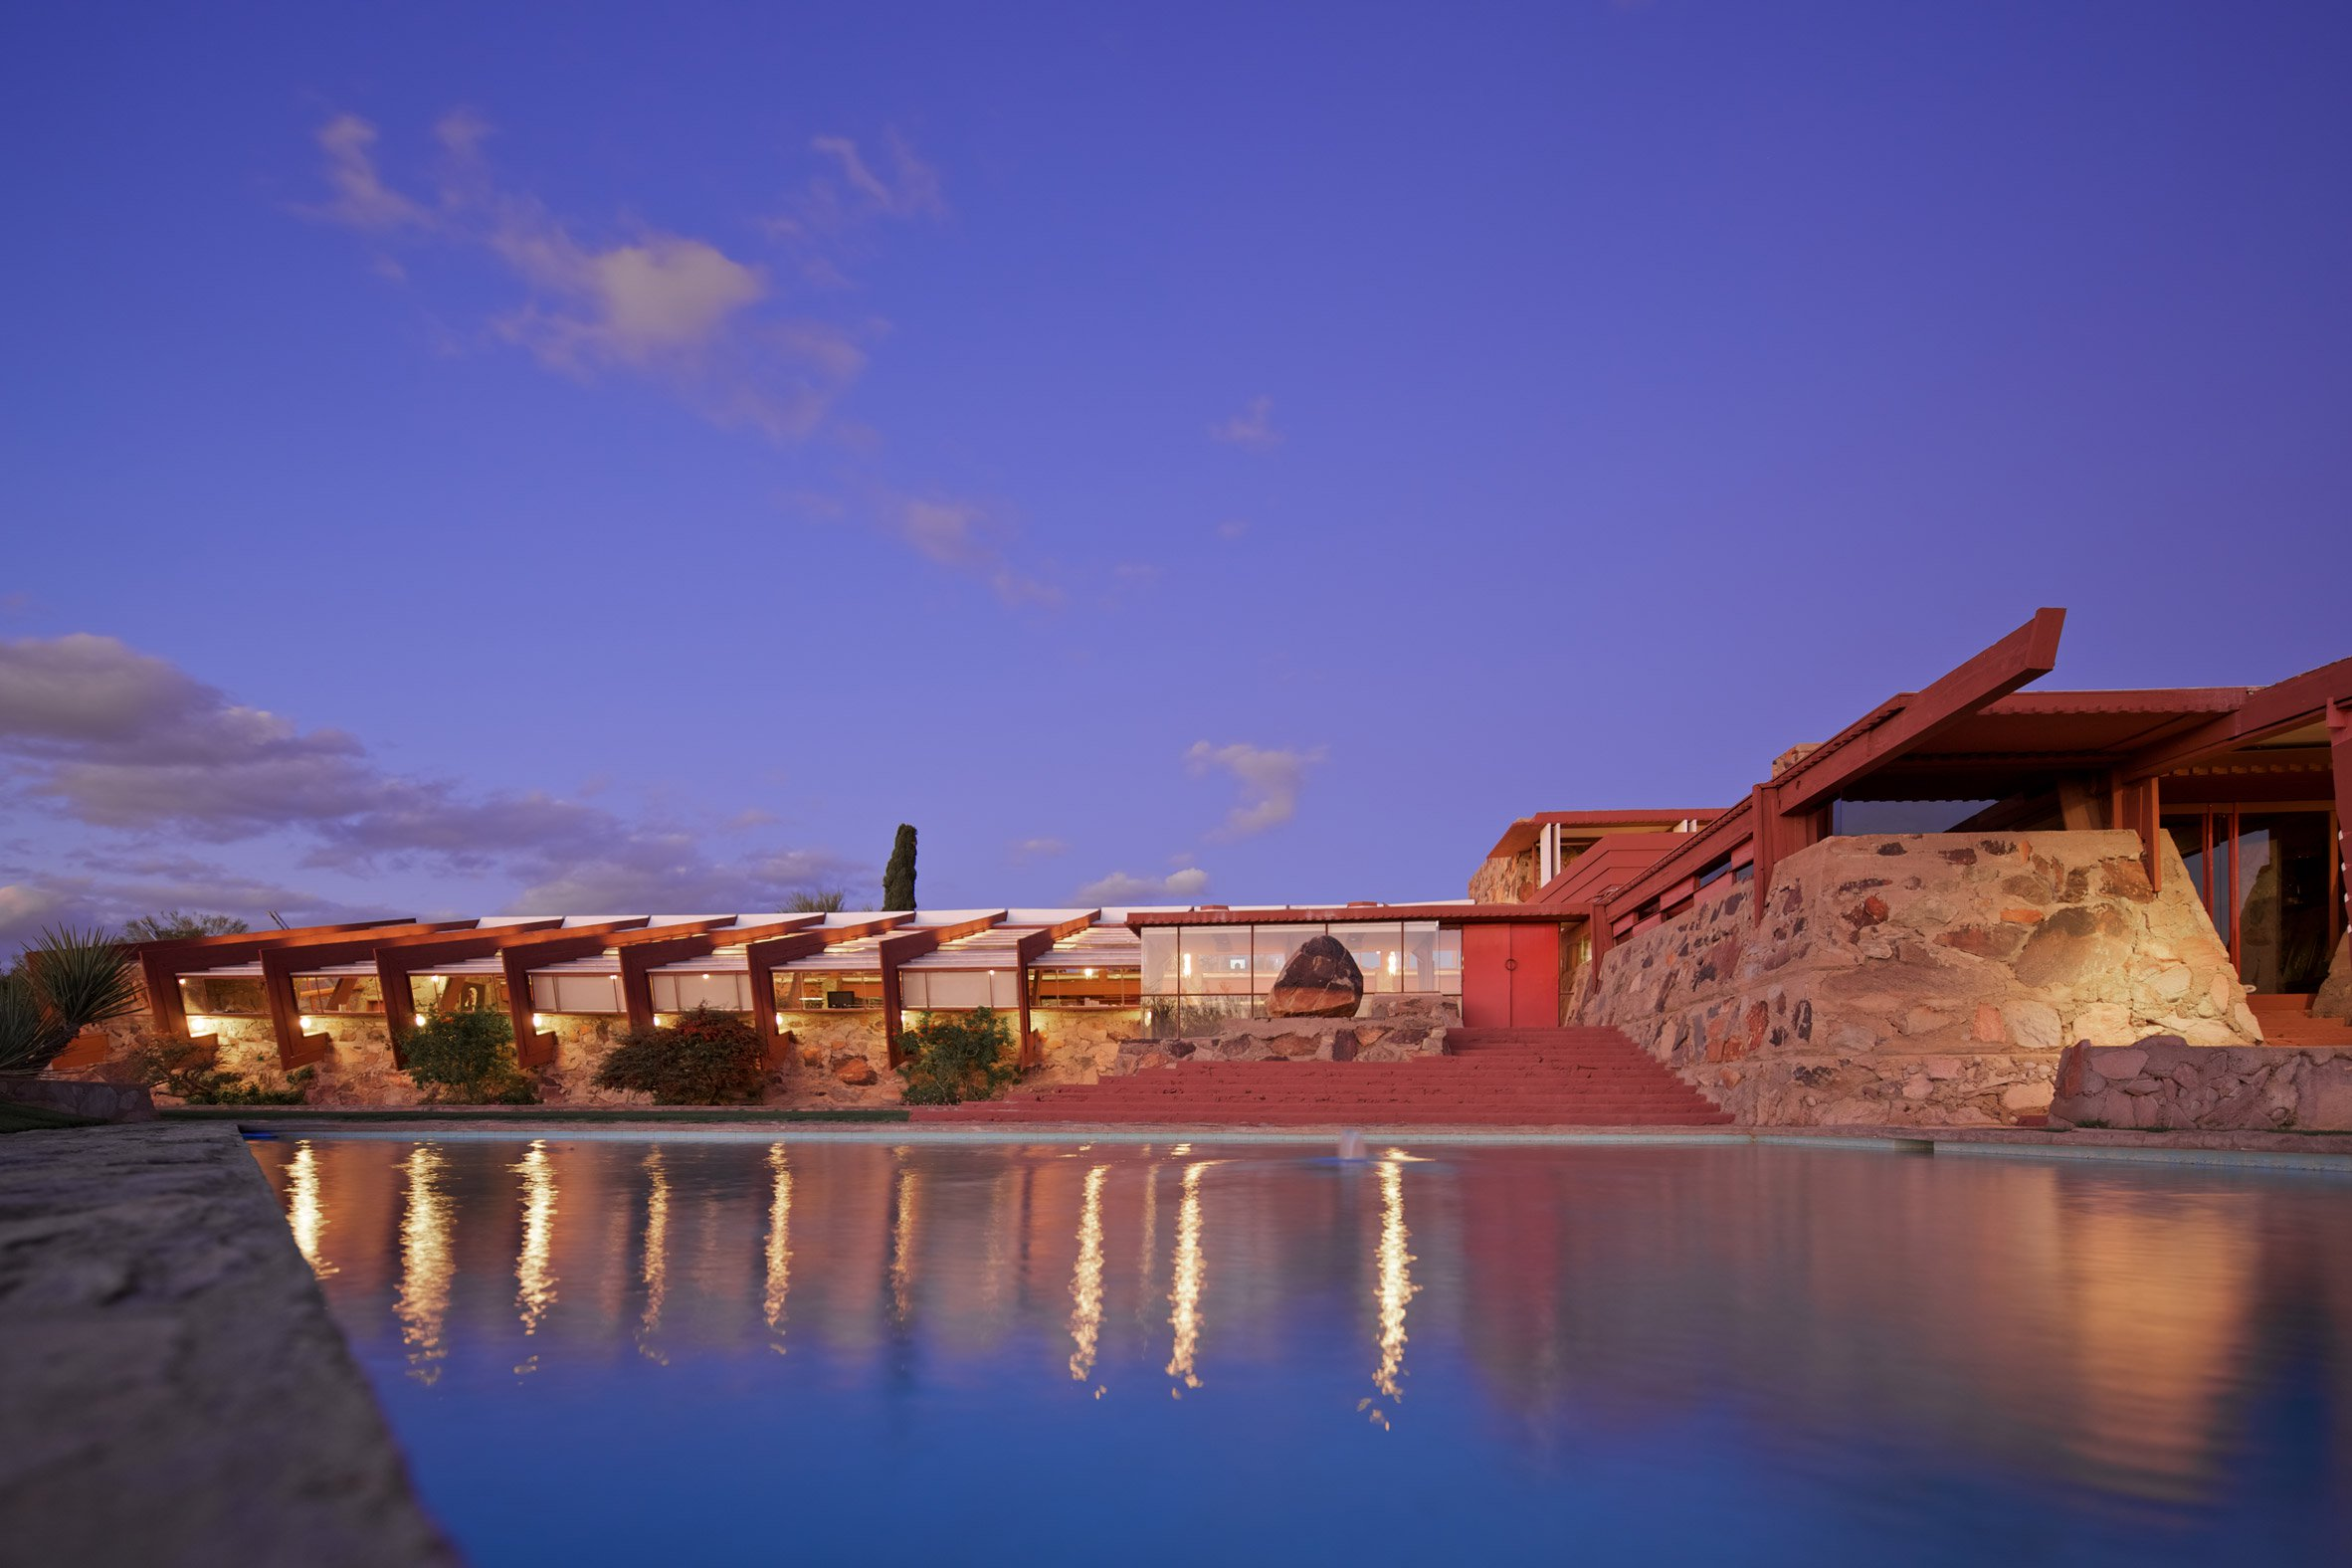 Frank Lloyd Wright designed Taliesin West as a desert retreat for himself and his students